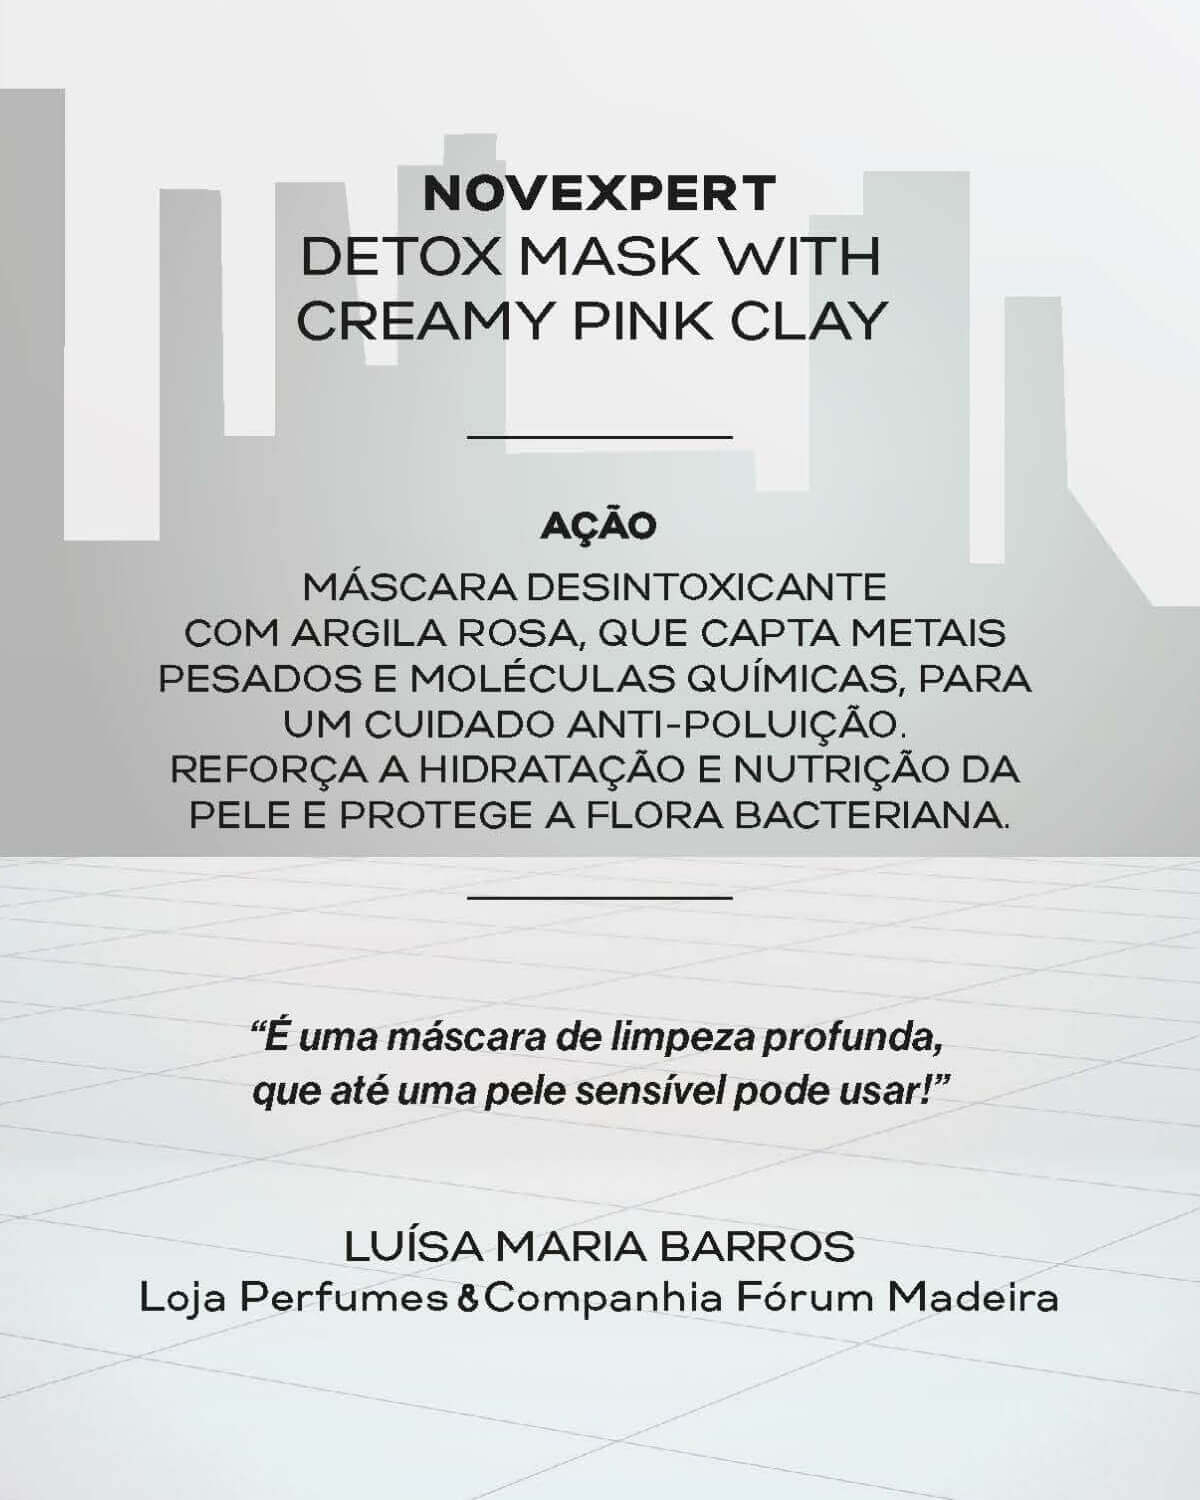 Magnesium Novexpert Detox Mask With Creamy Pink Clay